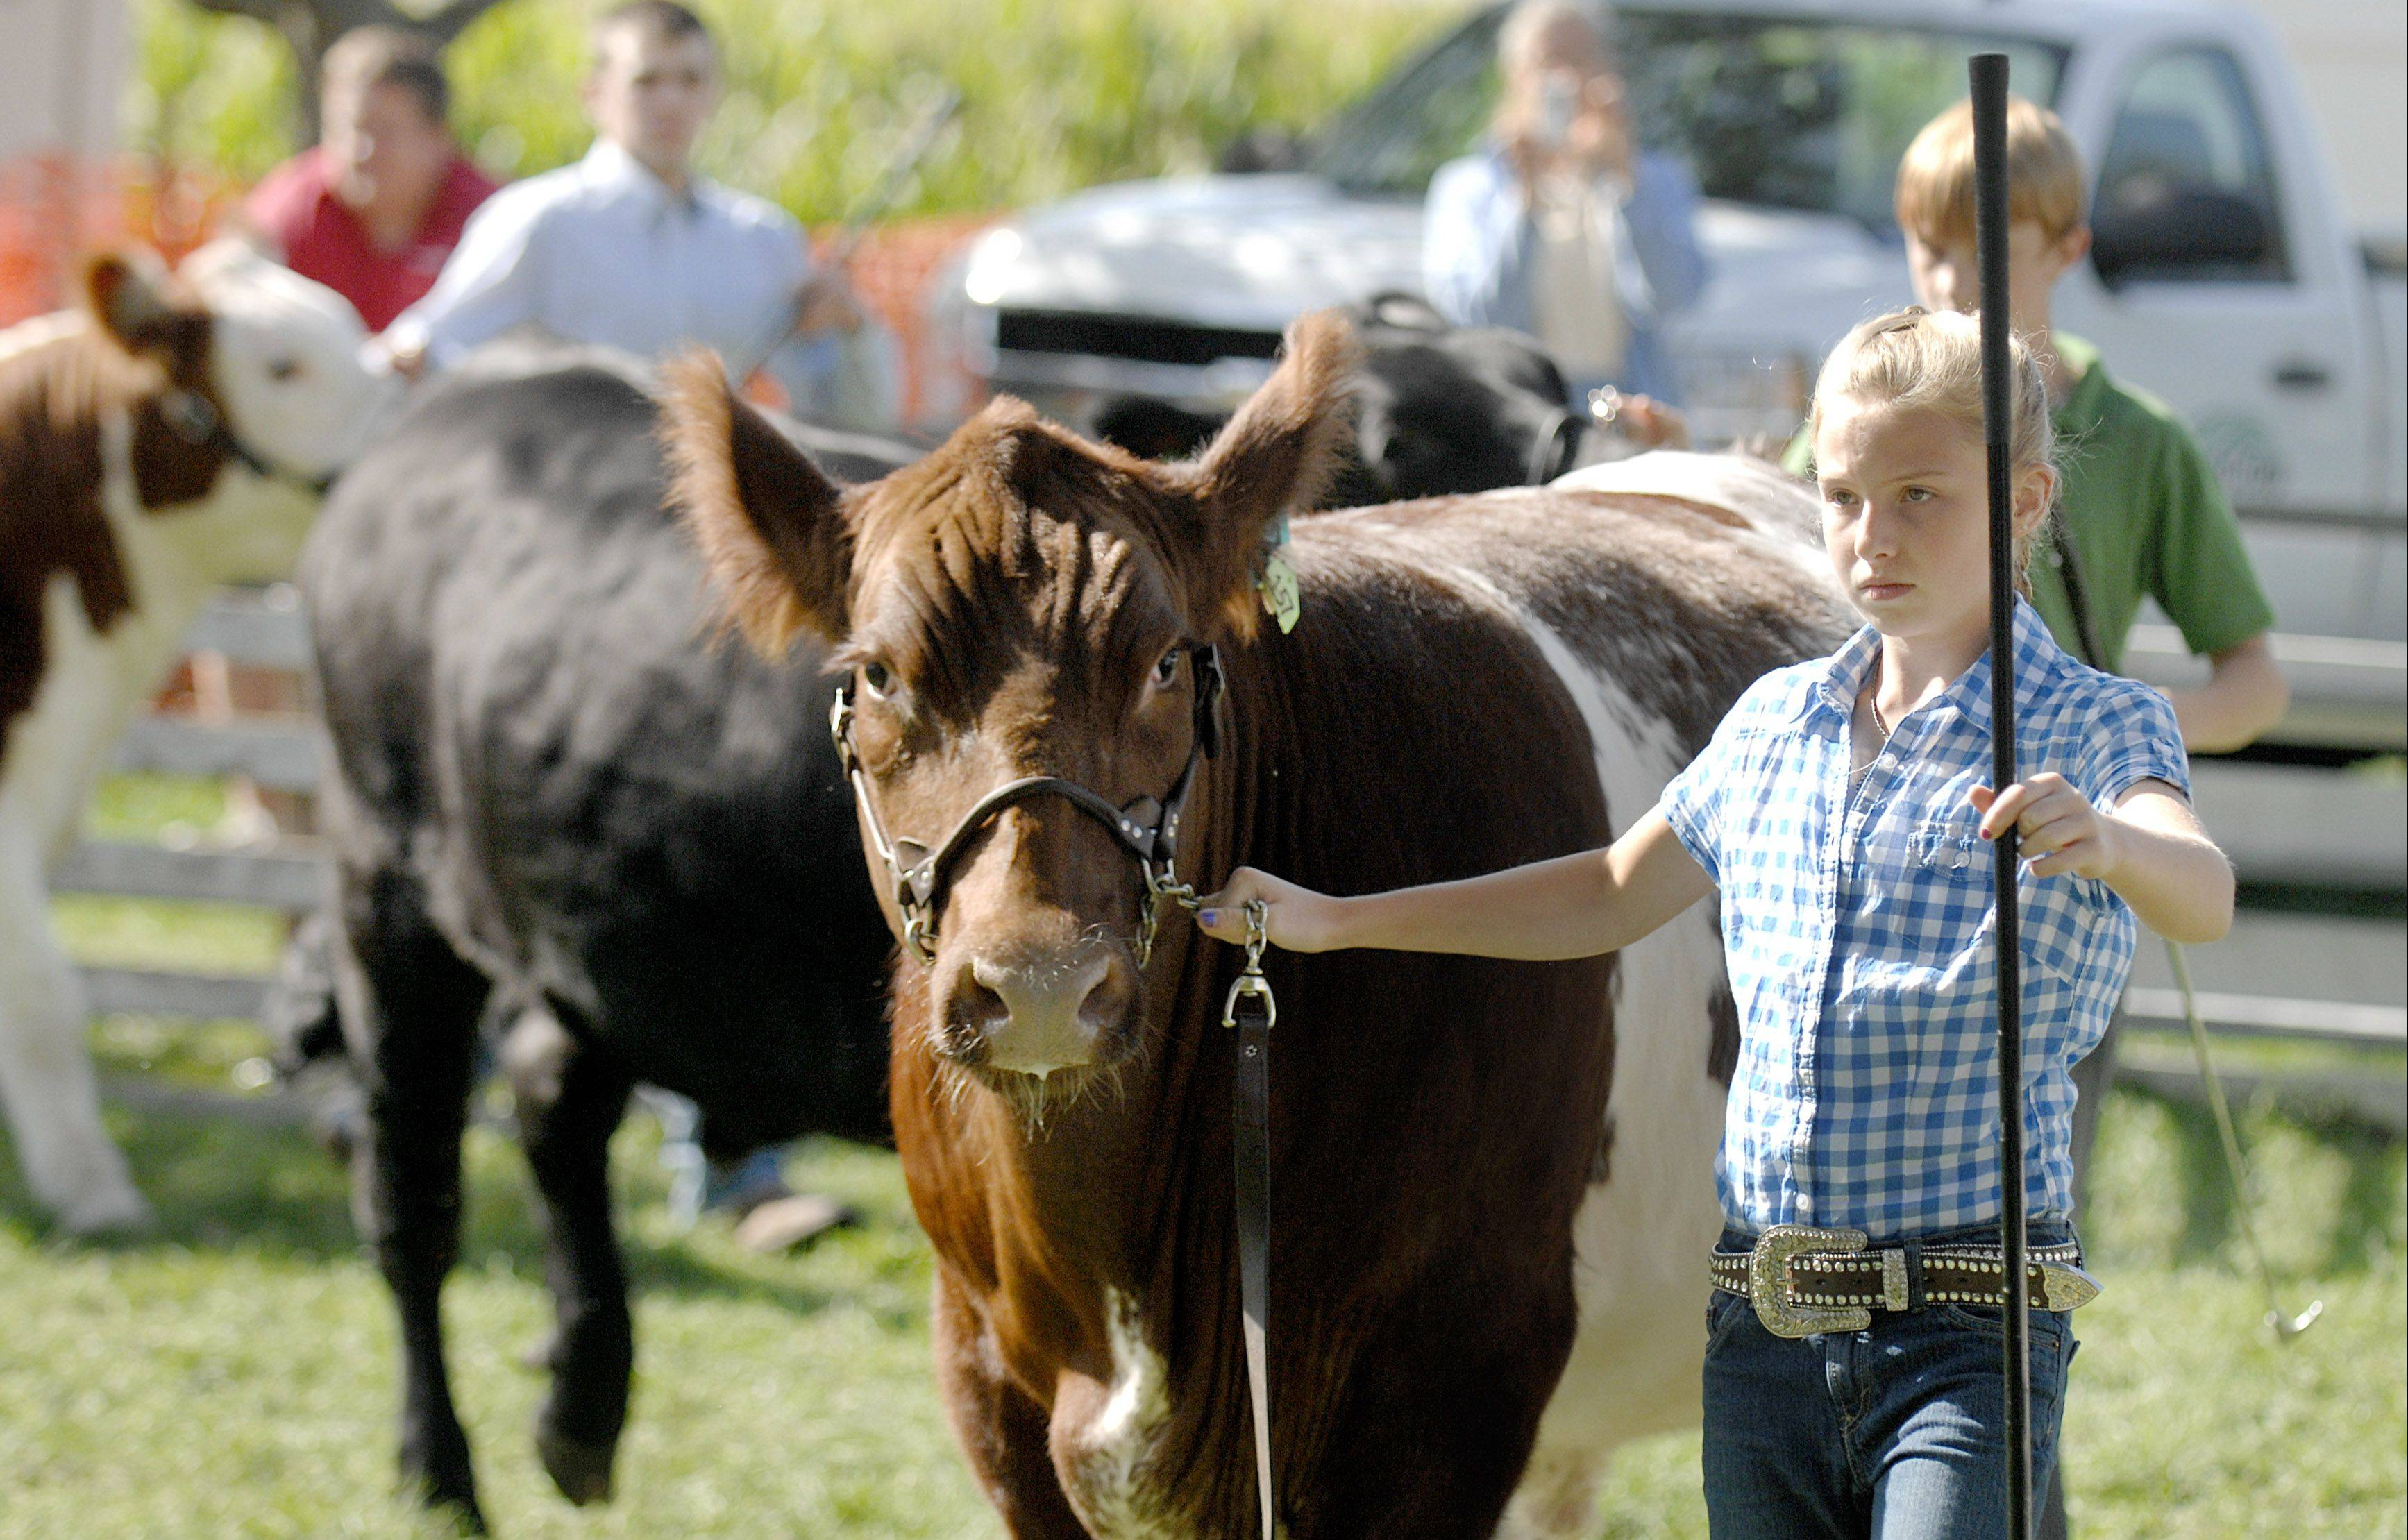 Megan Fidler, 12, of Sycamore leads her steer, Mason, in the lightweight category of the livestock judging at last year's Elburn Days. Fidler is a member of the Burlington Ag 4-H group.